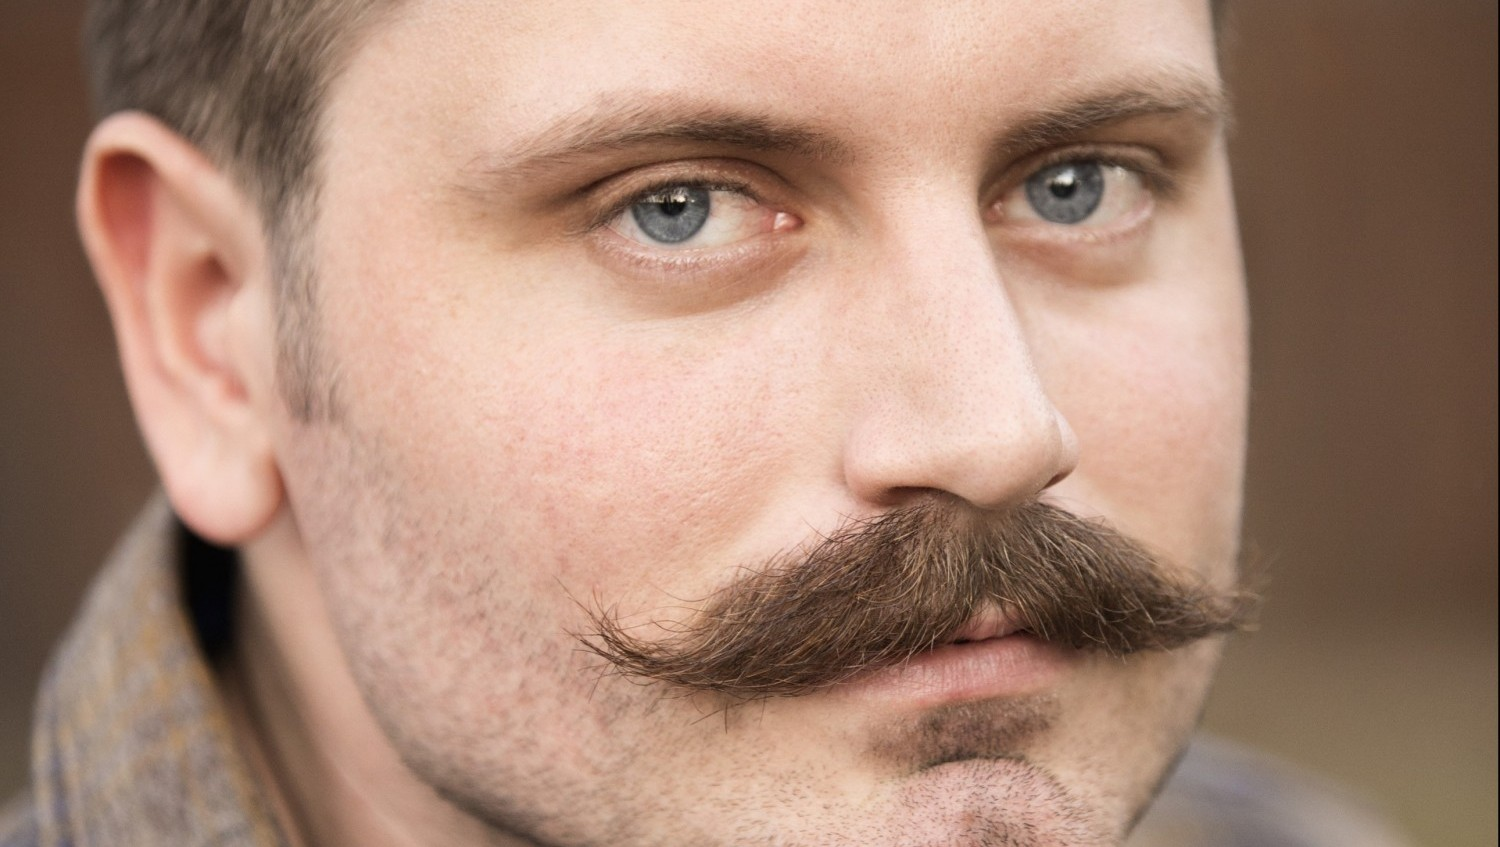 How to Groom a Moustache recommendations